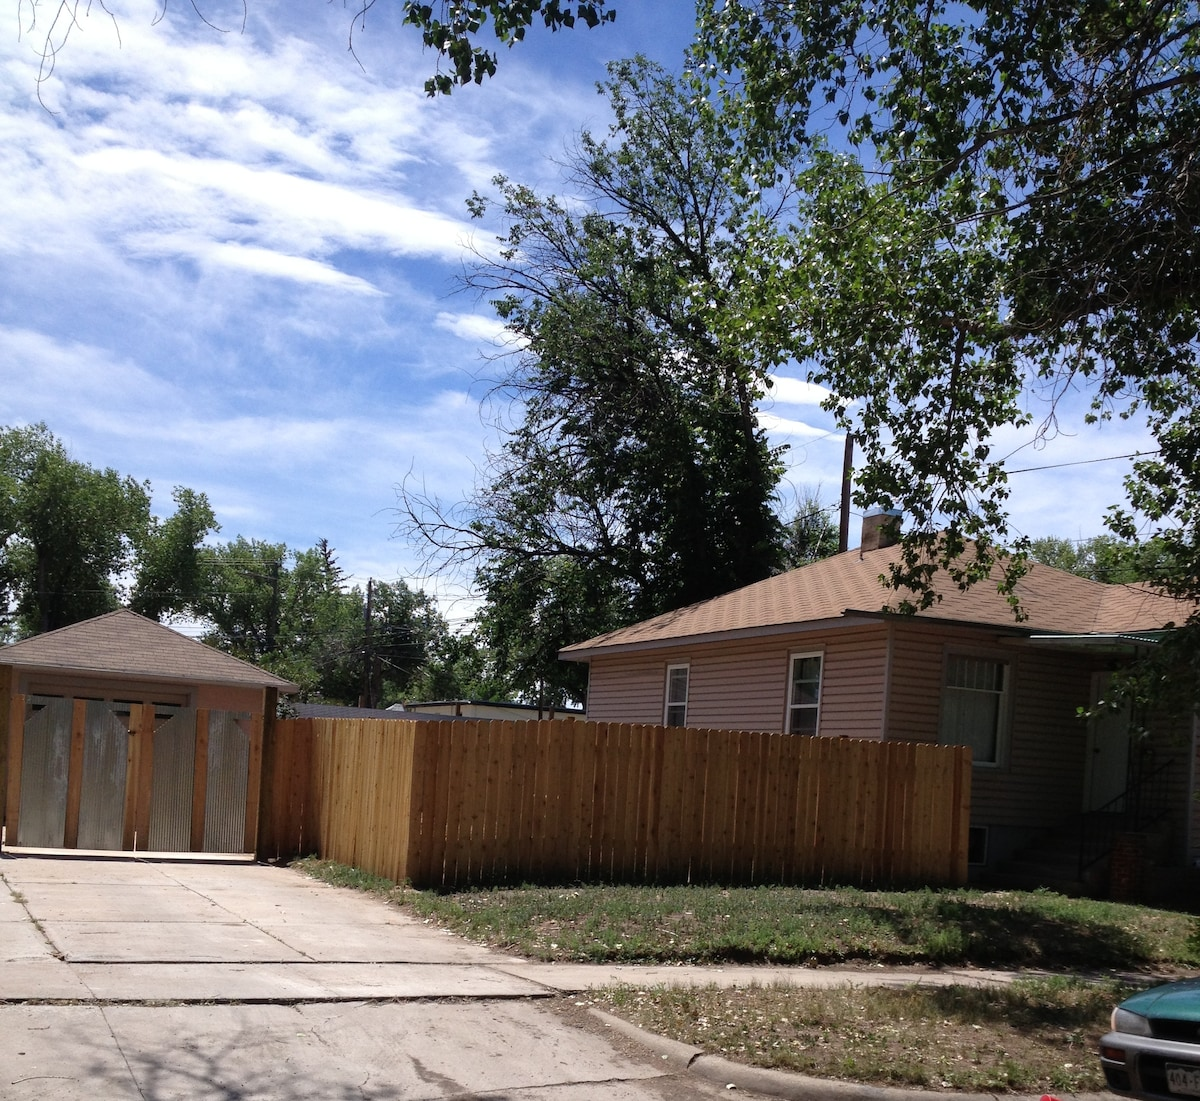 View of house/yard/driveway from the street.  Newly fenced yard with 2 gardens and outdoor furniture.